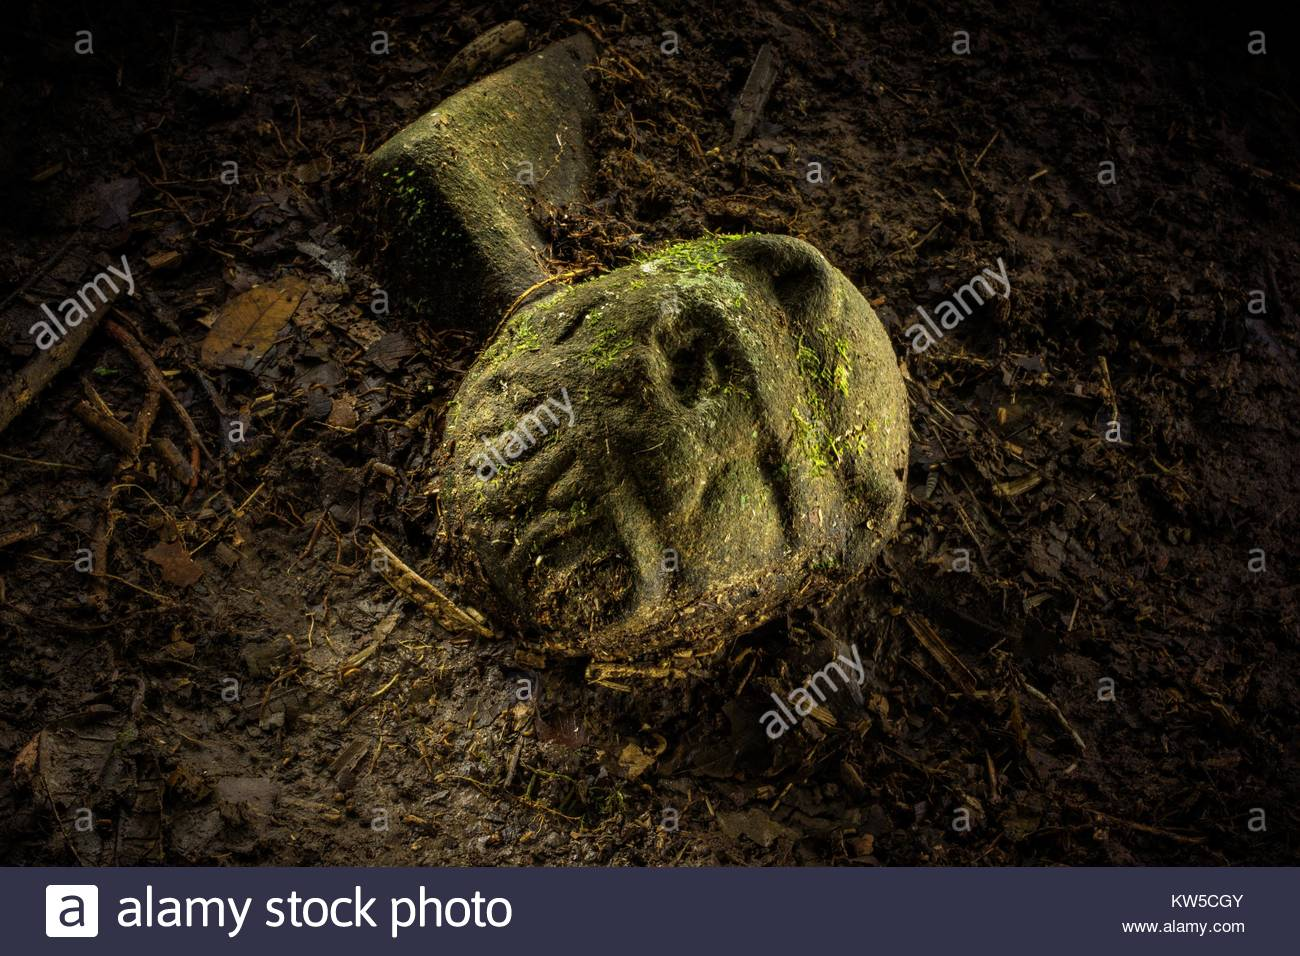 An artifact with a carved face, part jaguar, part human, about the size of a fist. - Stock Image